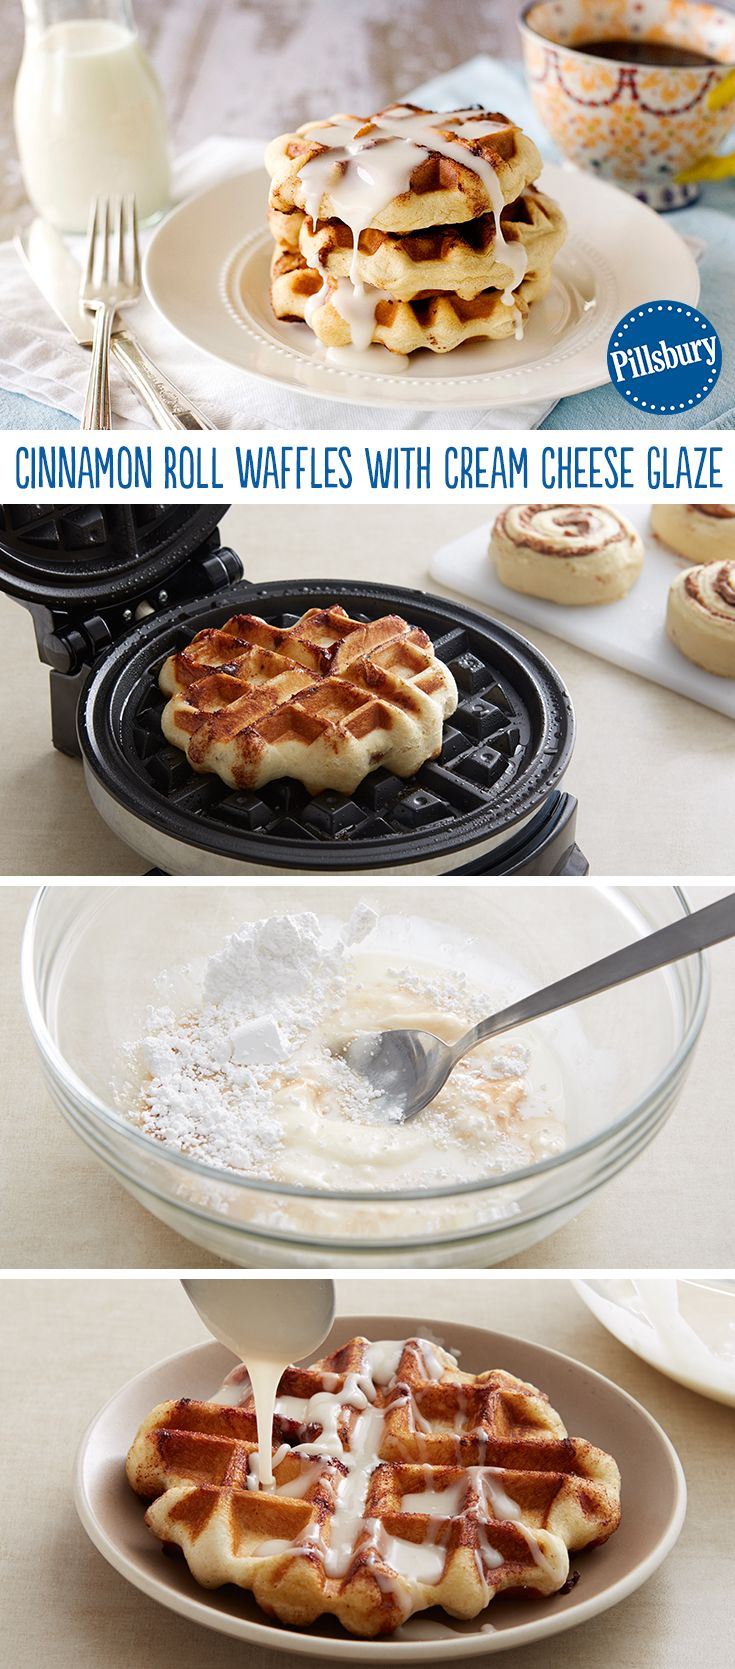 Weekend breakfast will never be the same. Try making cinnamon rolls with your waffle iron! It's a fun, easy idea that kids will love. Don't forget to pour icing (best part!) over the top.